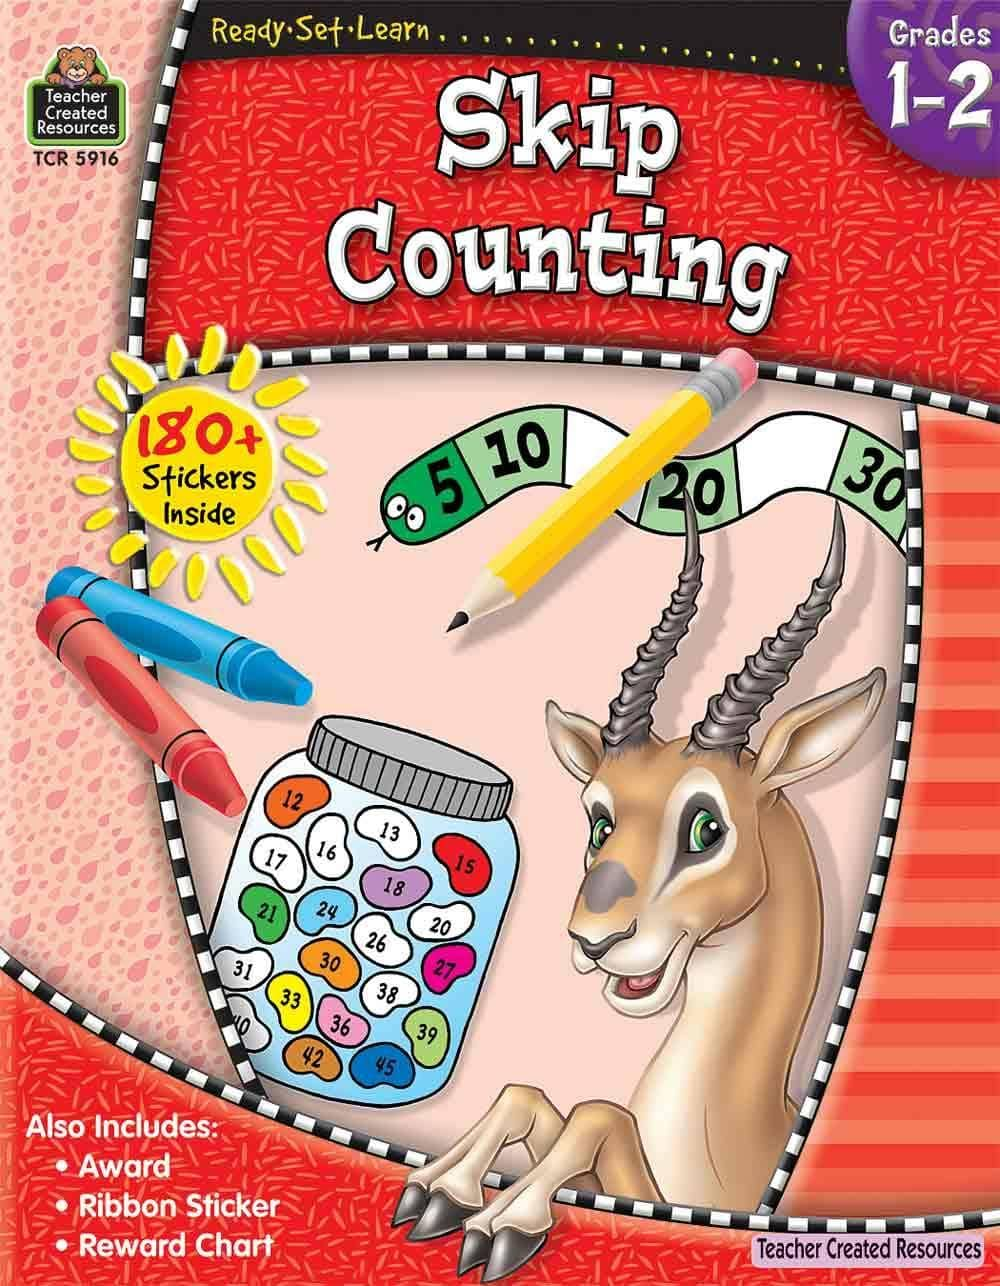 Ready-Set-Learn: Skip Counting Grades 1-2-Kidding Around NYC